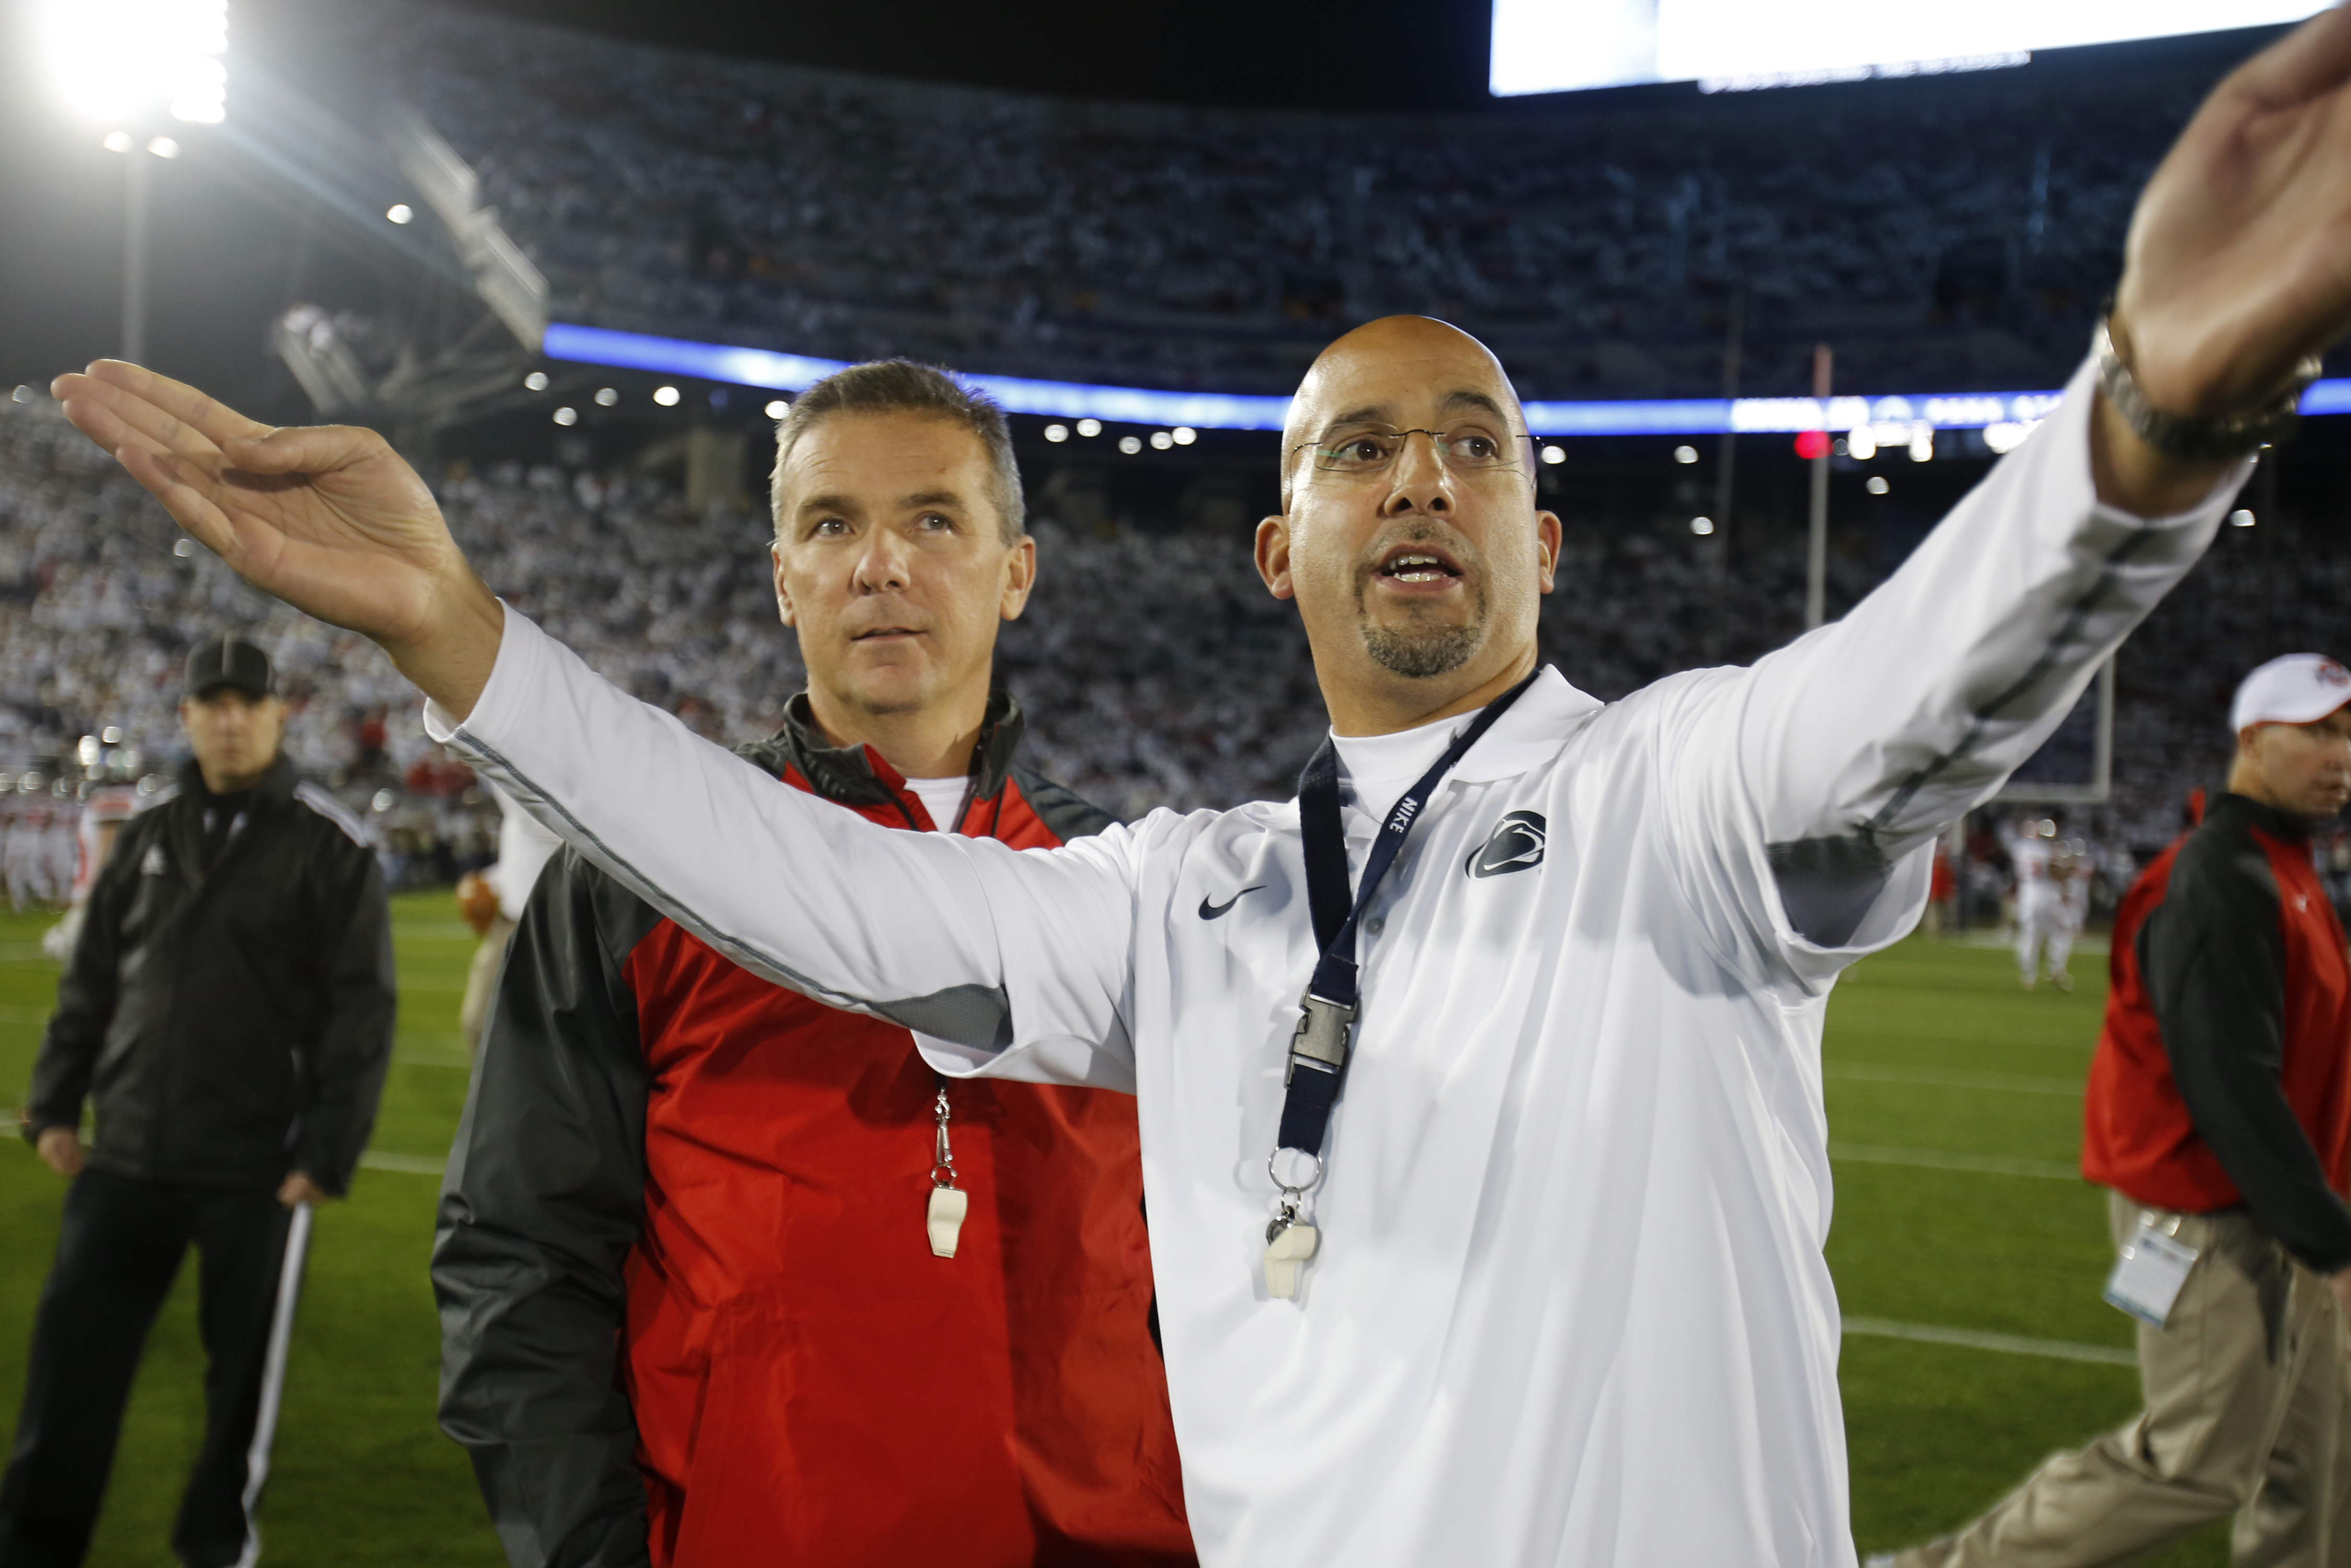 In October 2014, Penn State coach James Franklin, right, showed Ohio State coach Urban Meyer the student section of Beaver Stadium before the teams played.